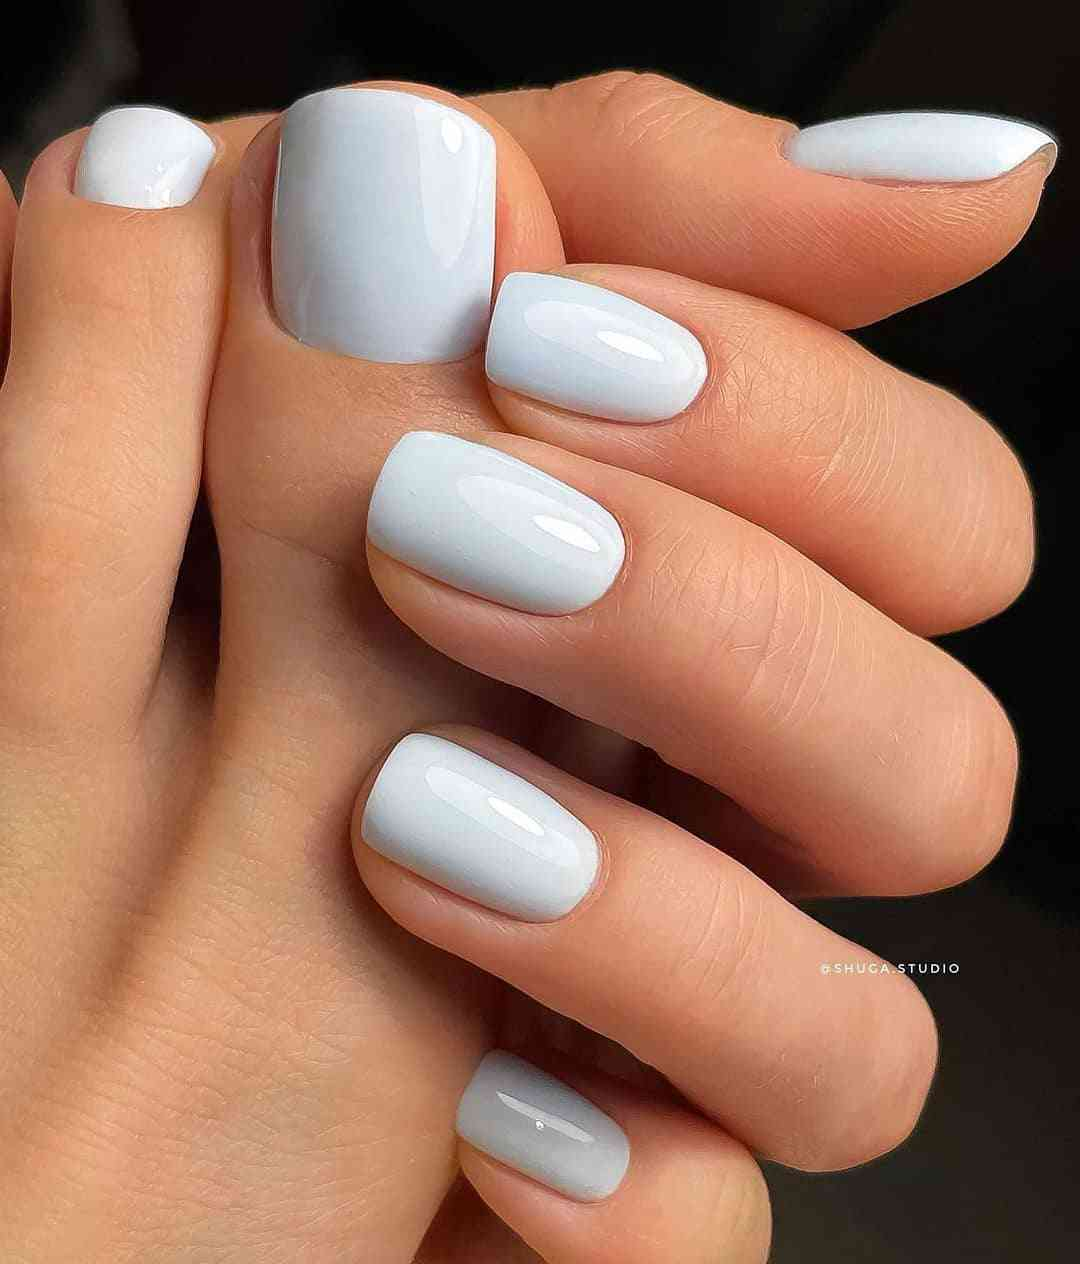 35 Cute Summer Nails To Rock For Women In 2021 images 31